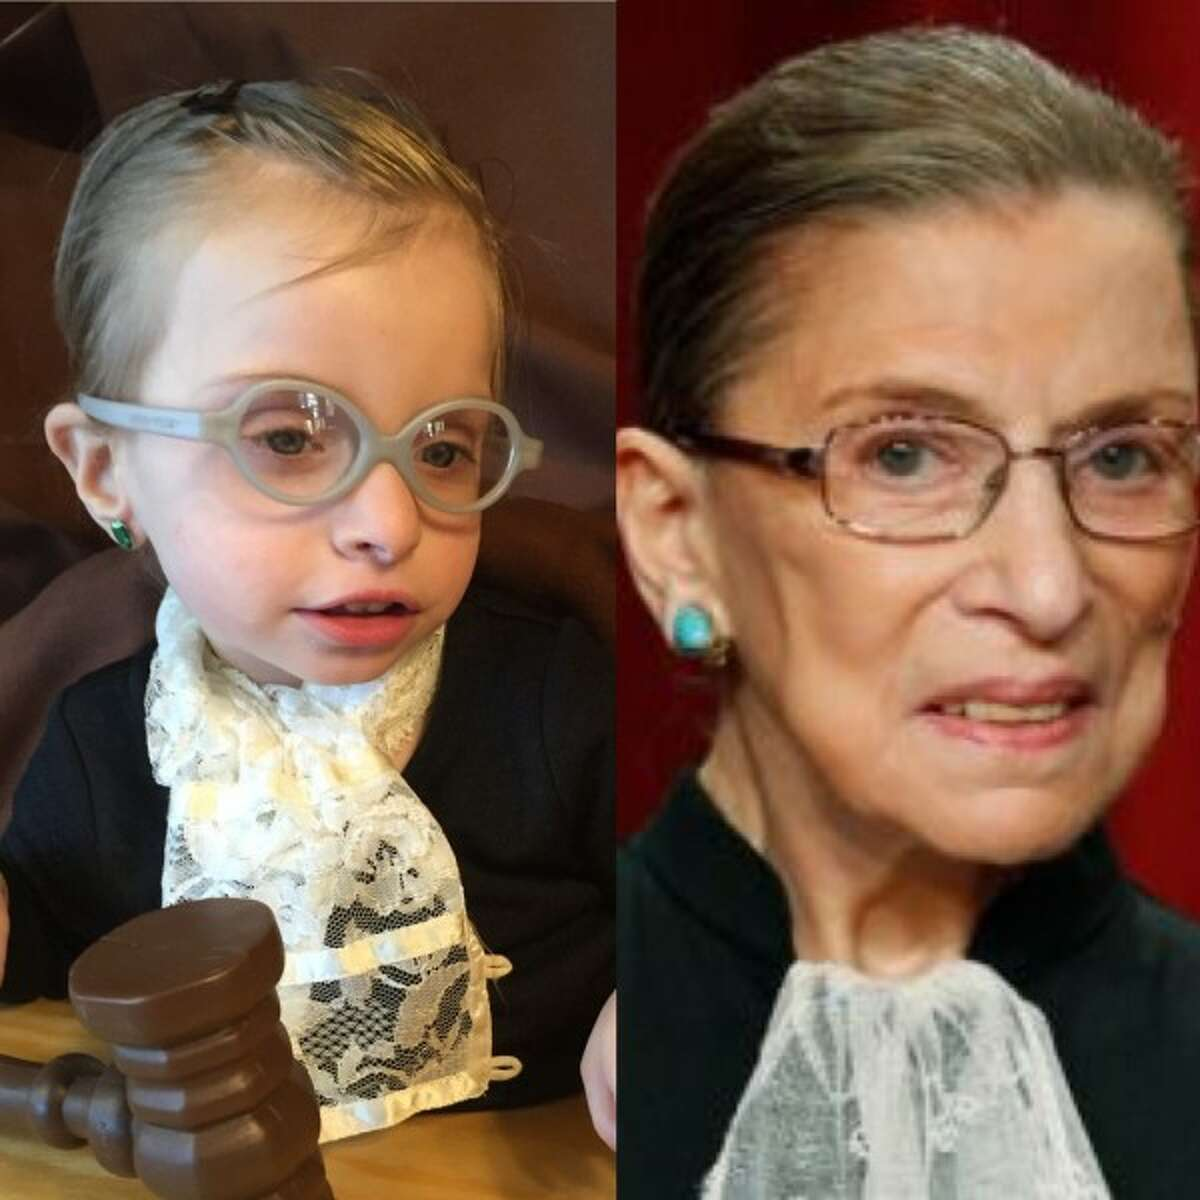 RUTH BADER GINSBURG (2015): Mother Andrea wrote in: